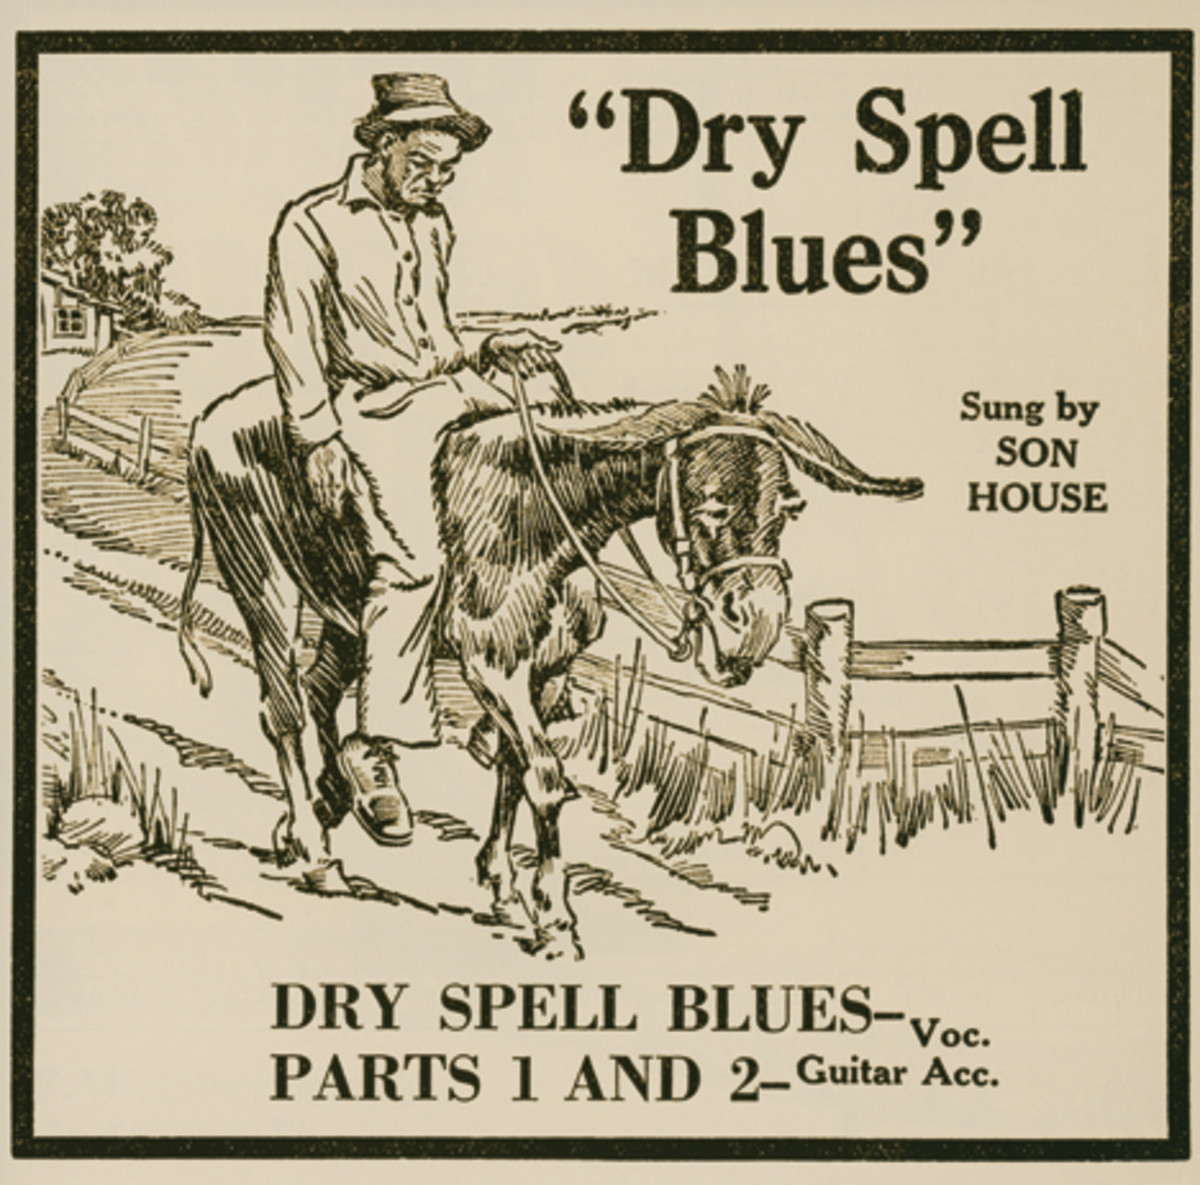 Son House Dry Spell Blues Paramount 12990